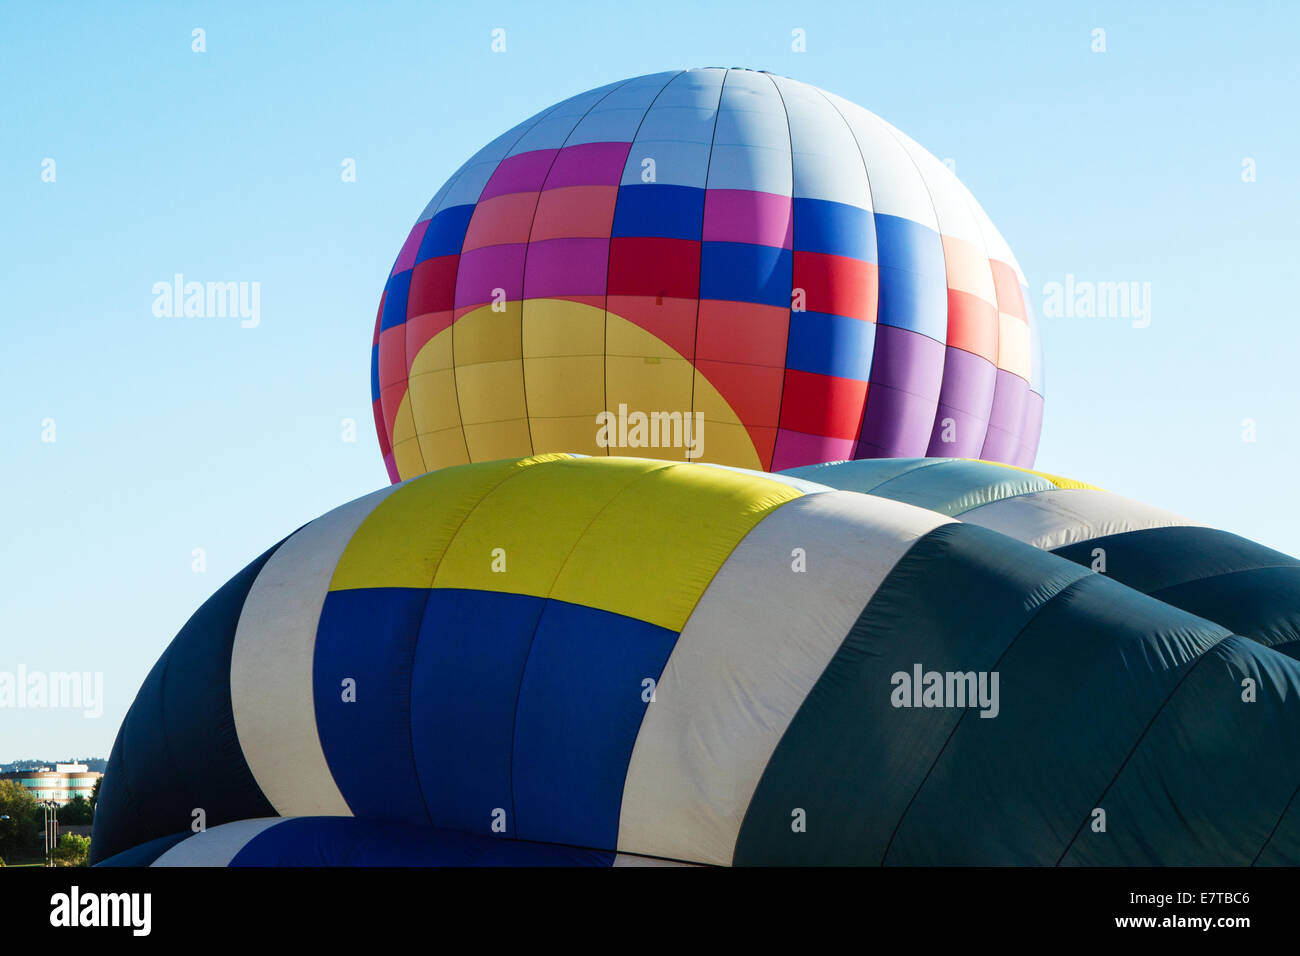 Hot air balloons being inflated and readied for launch Stock Photo